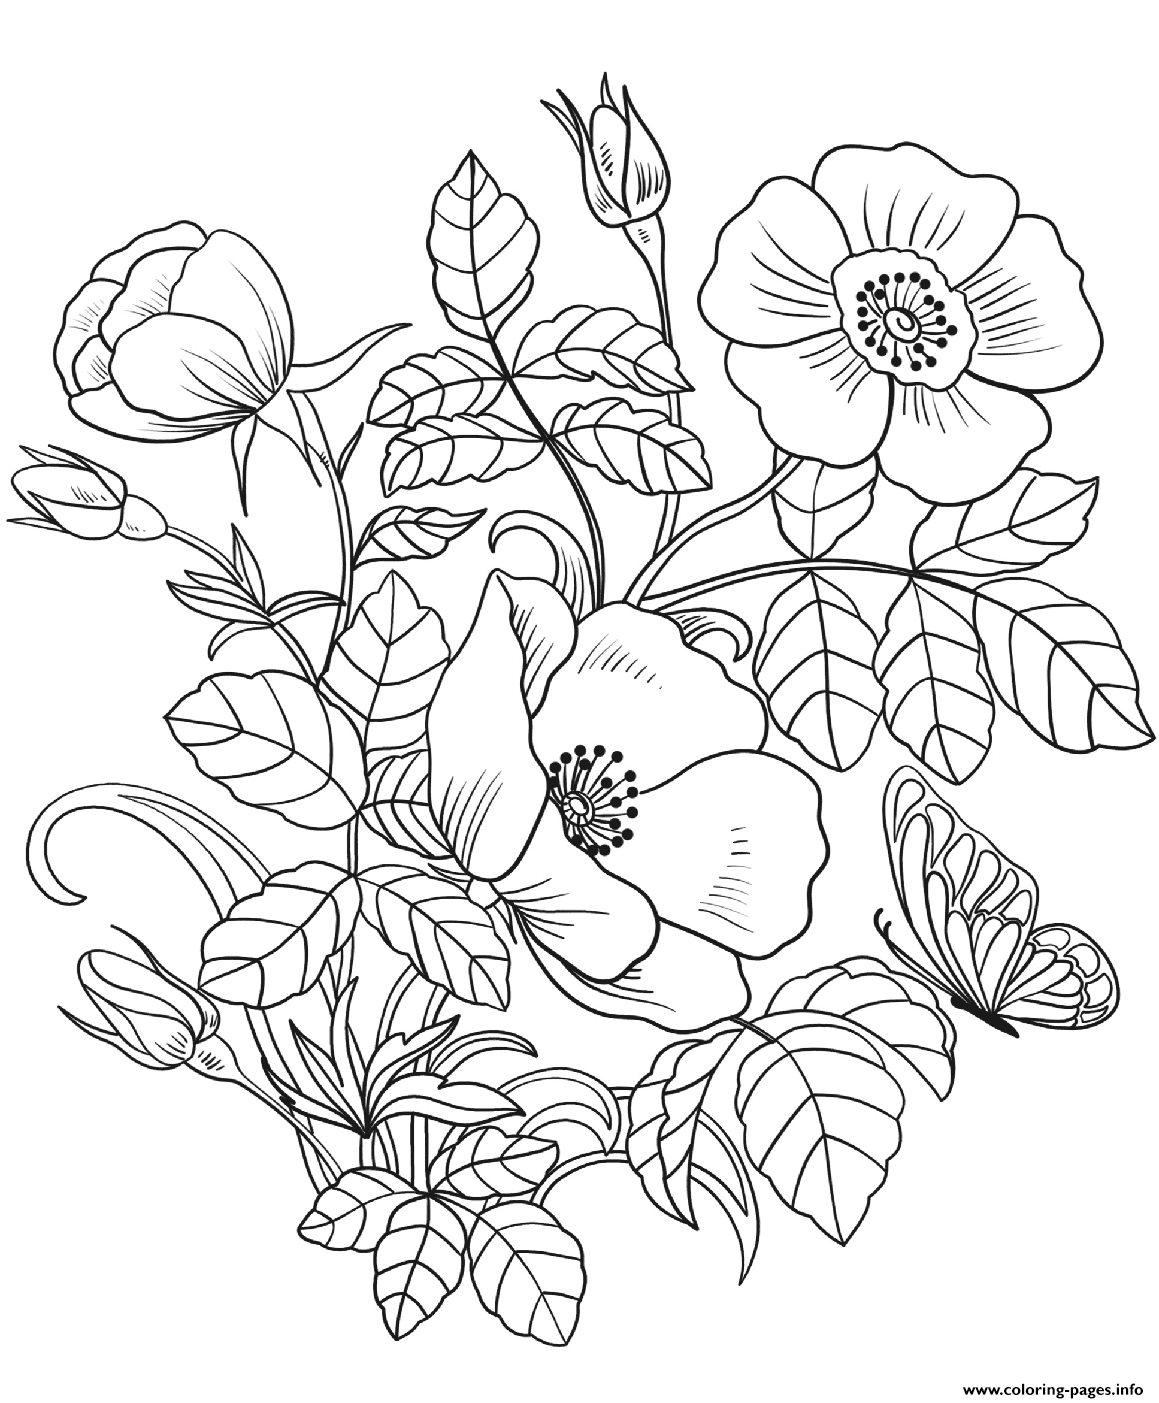 coloring pages flowers free printable flower coloring pages for kids cool2bkids flowers coloring pages